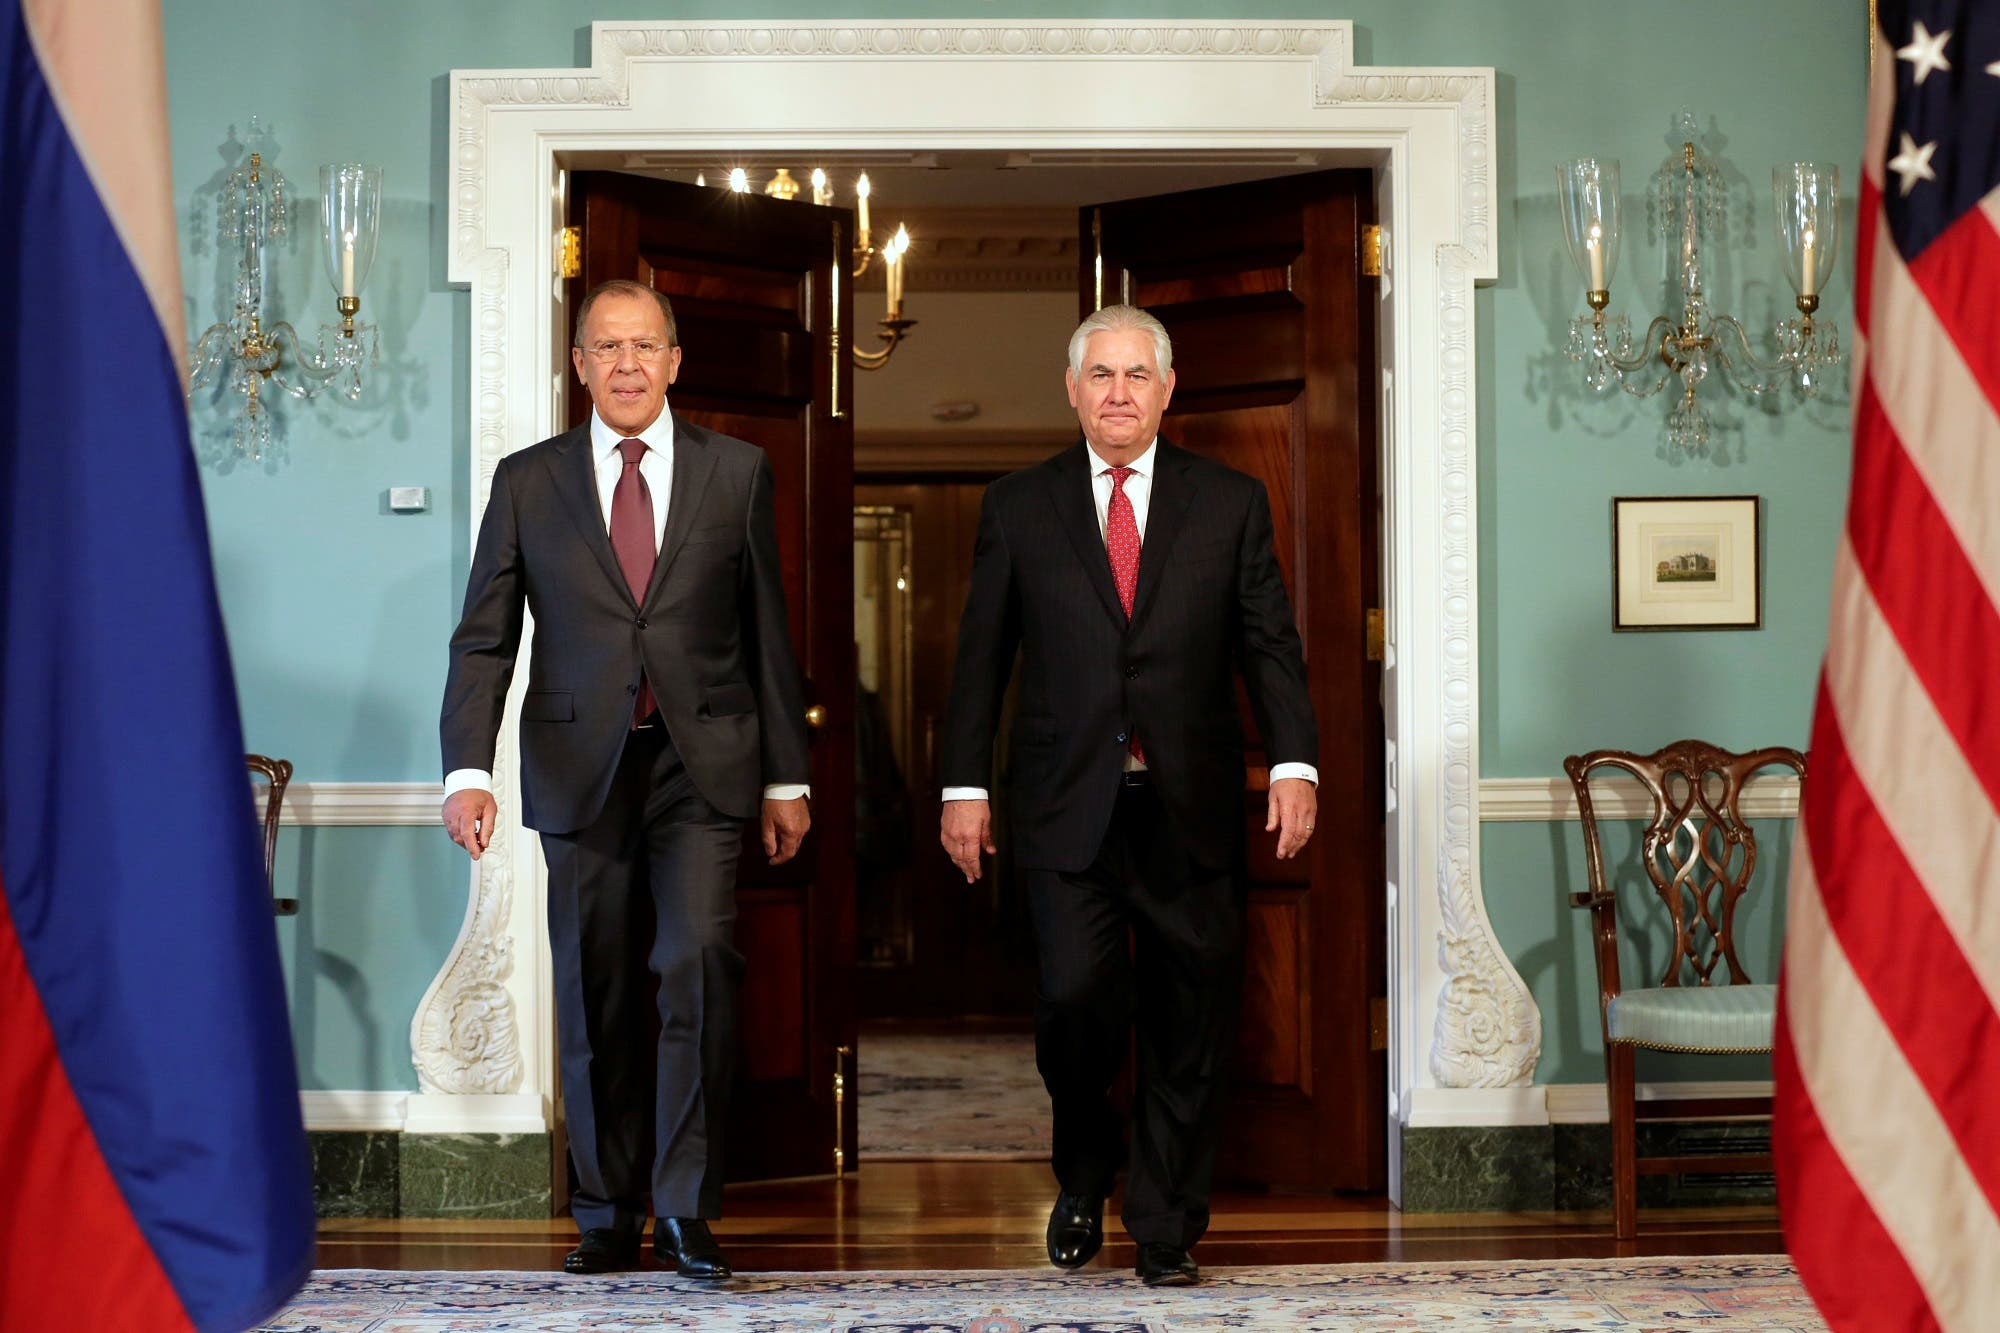 US Secretary of State Rex Tillerson (R) walks with Russian Foreign Minister Sergey Lavrov before their meeting at the State Department in Washington, US. (Reuters)